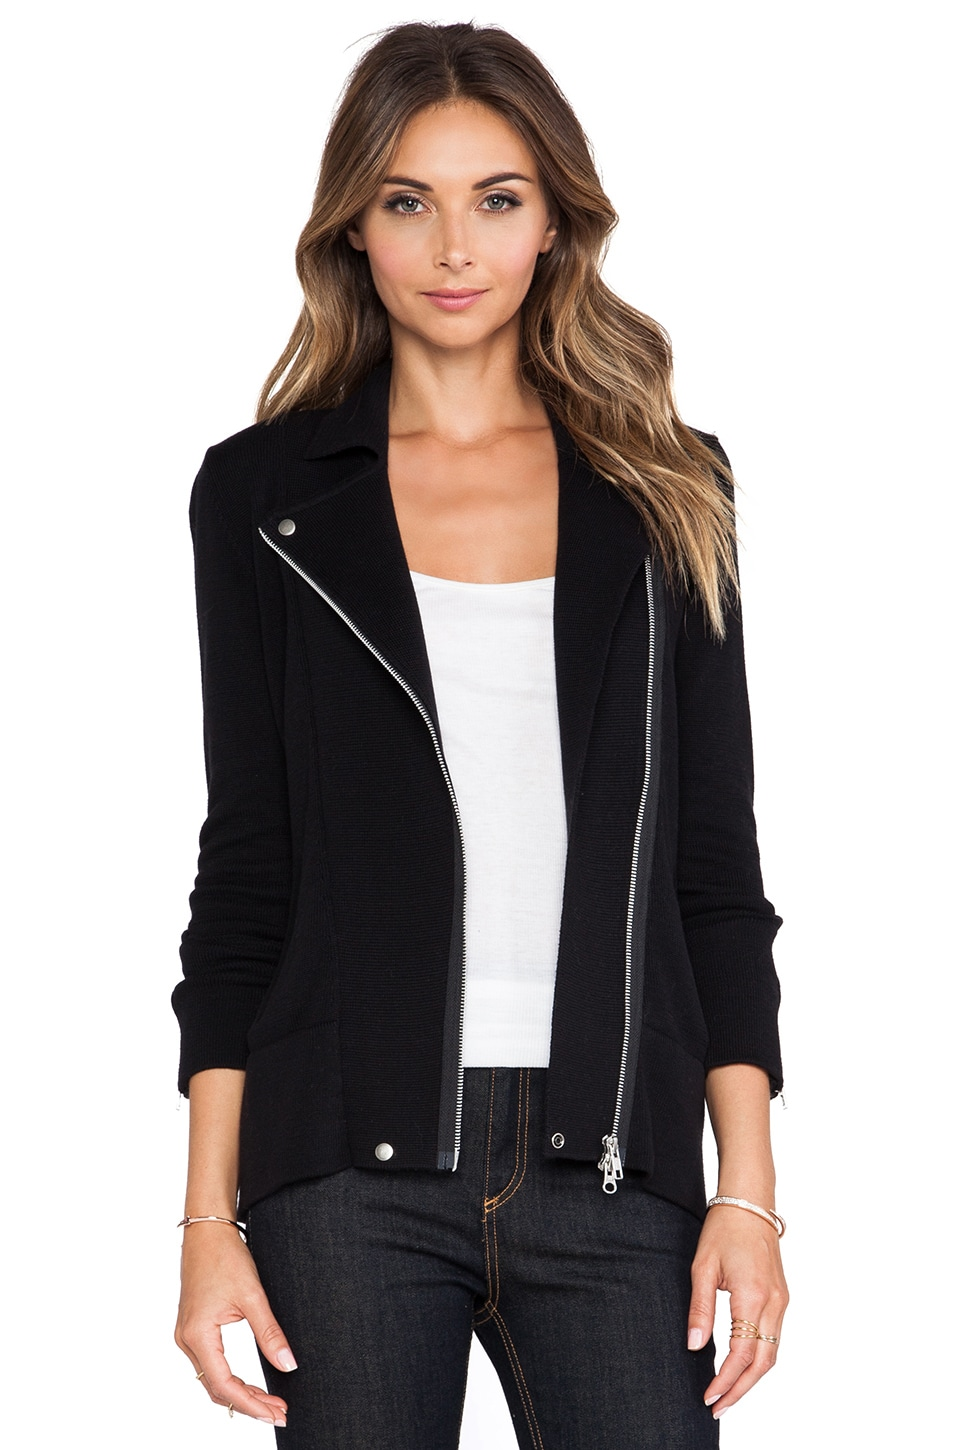 Autumn Cashmere Knit Motorcycle Jacket in Black